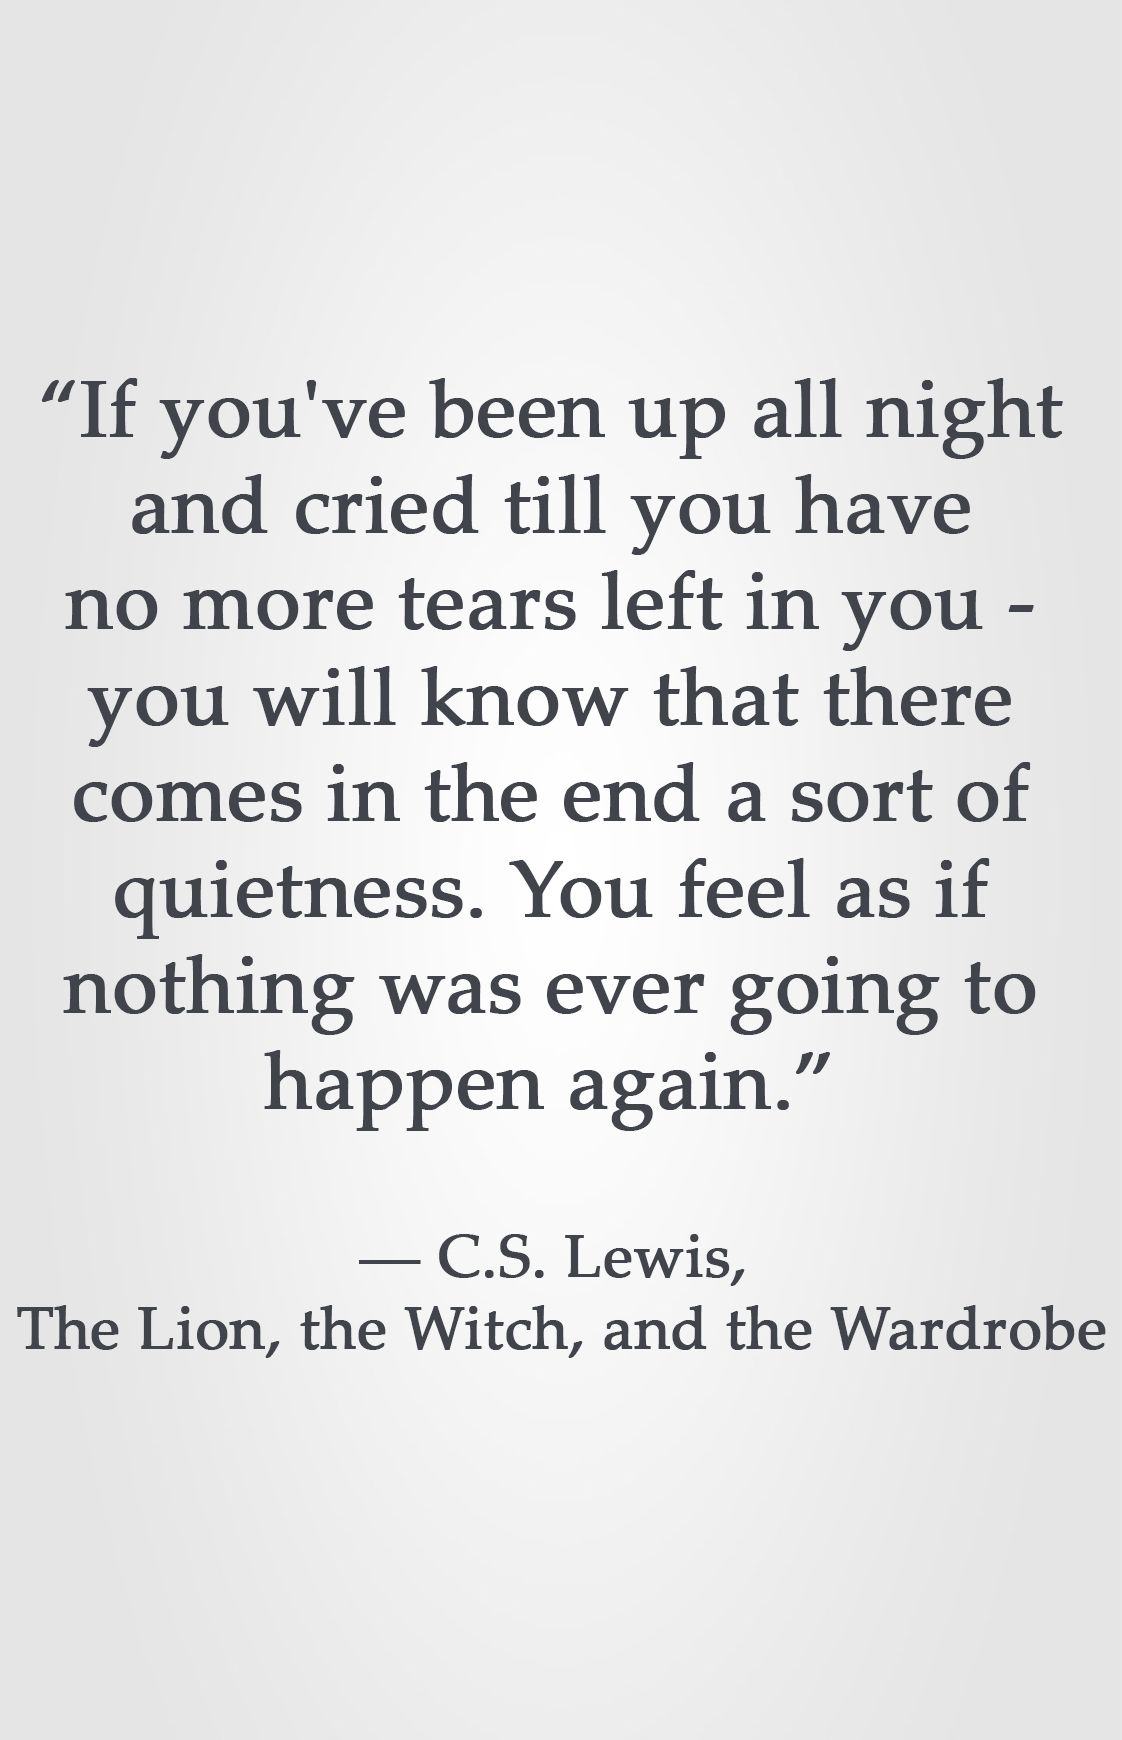 If You Ve Been Up All Night And Cried Till You Have No More Tears Left In You You Will Know That There Comes I Cs Lewis Quotes Quotable Quotes Wisdom